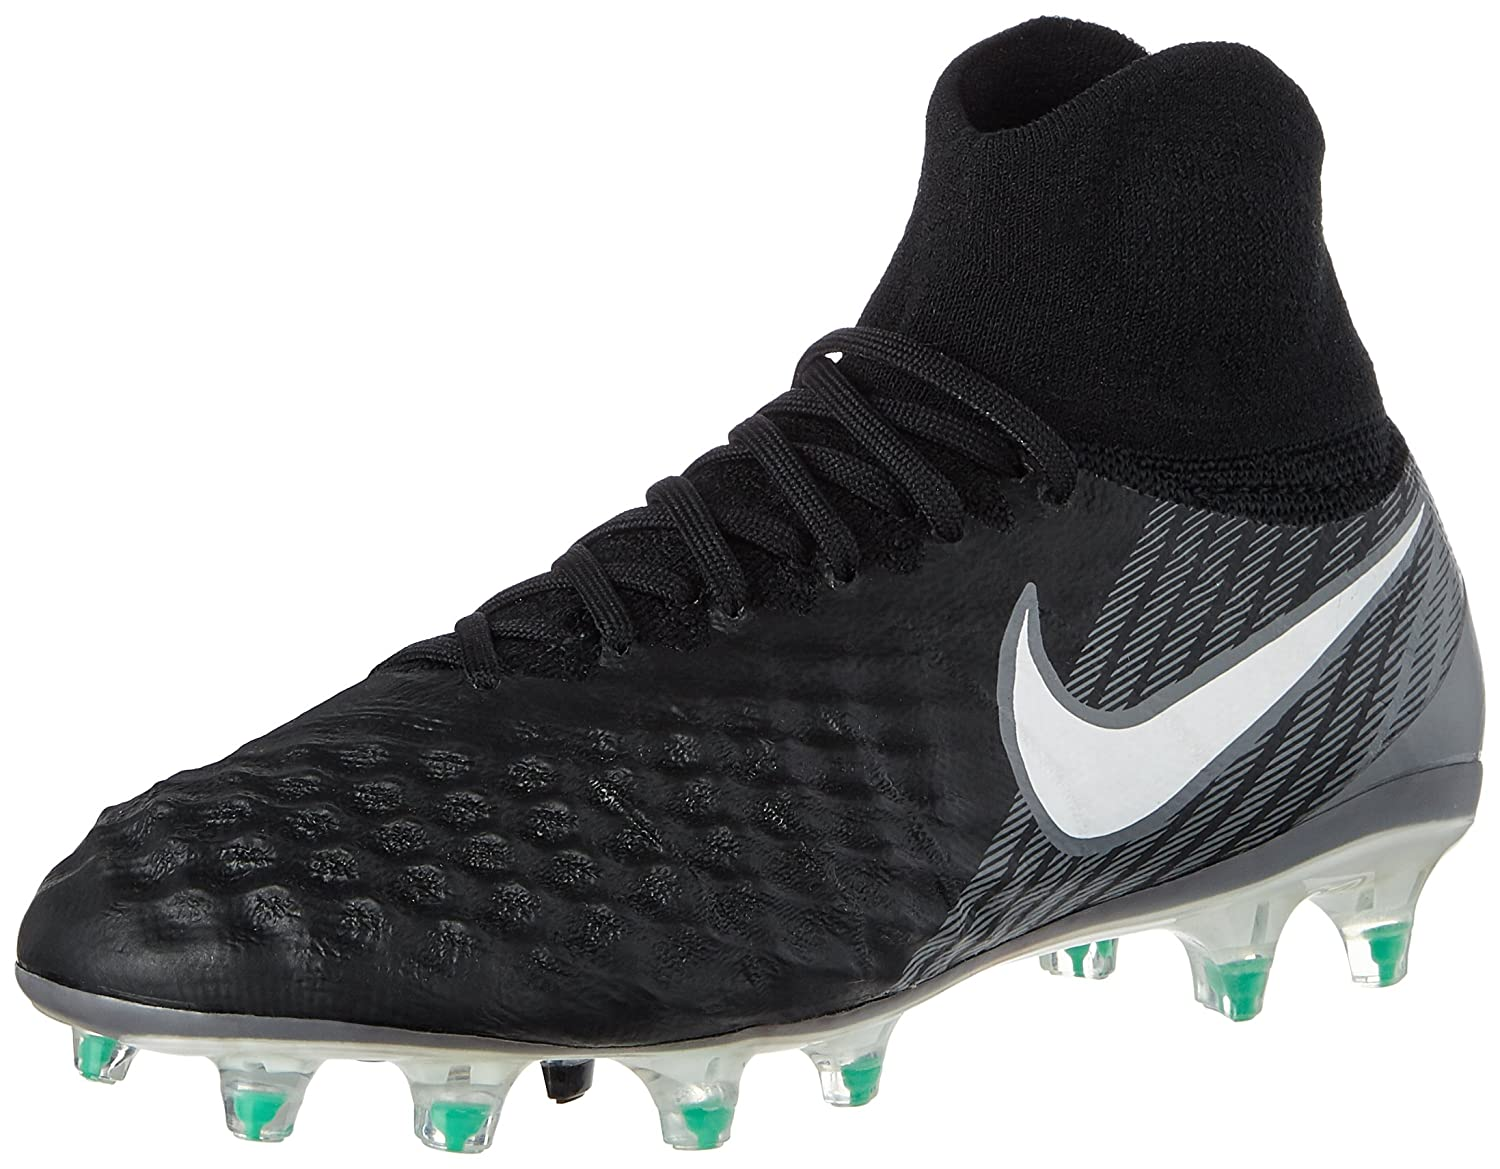 timeless design 2f925 66908 Amazon.com  NIKE Men s Magista Onda II FG Soccer Cleat  Shoes